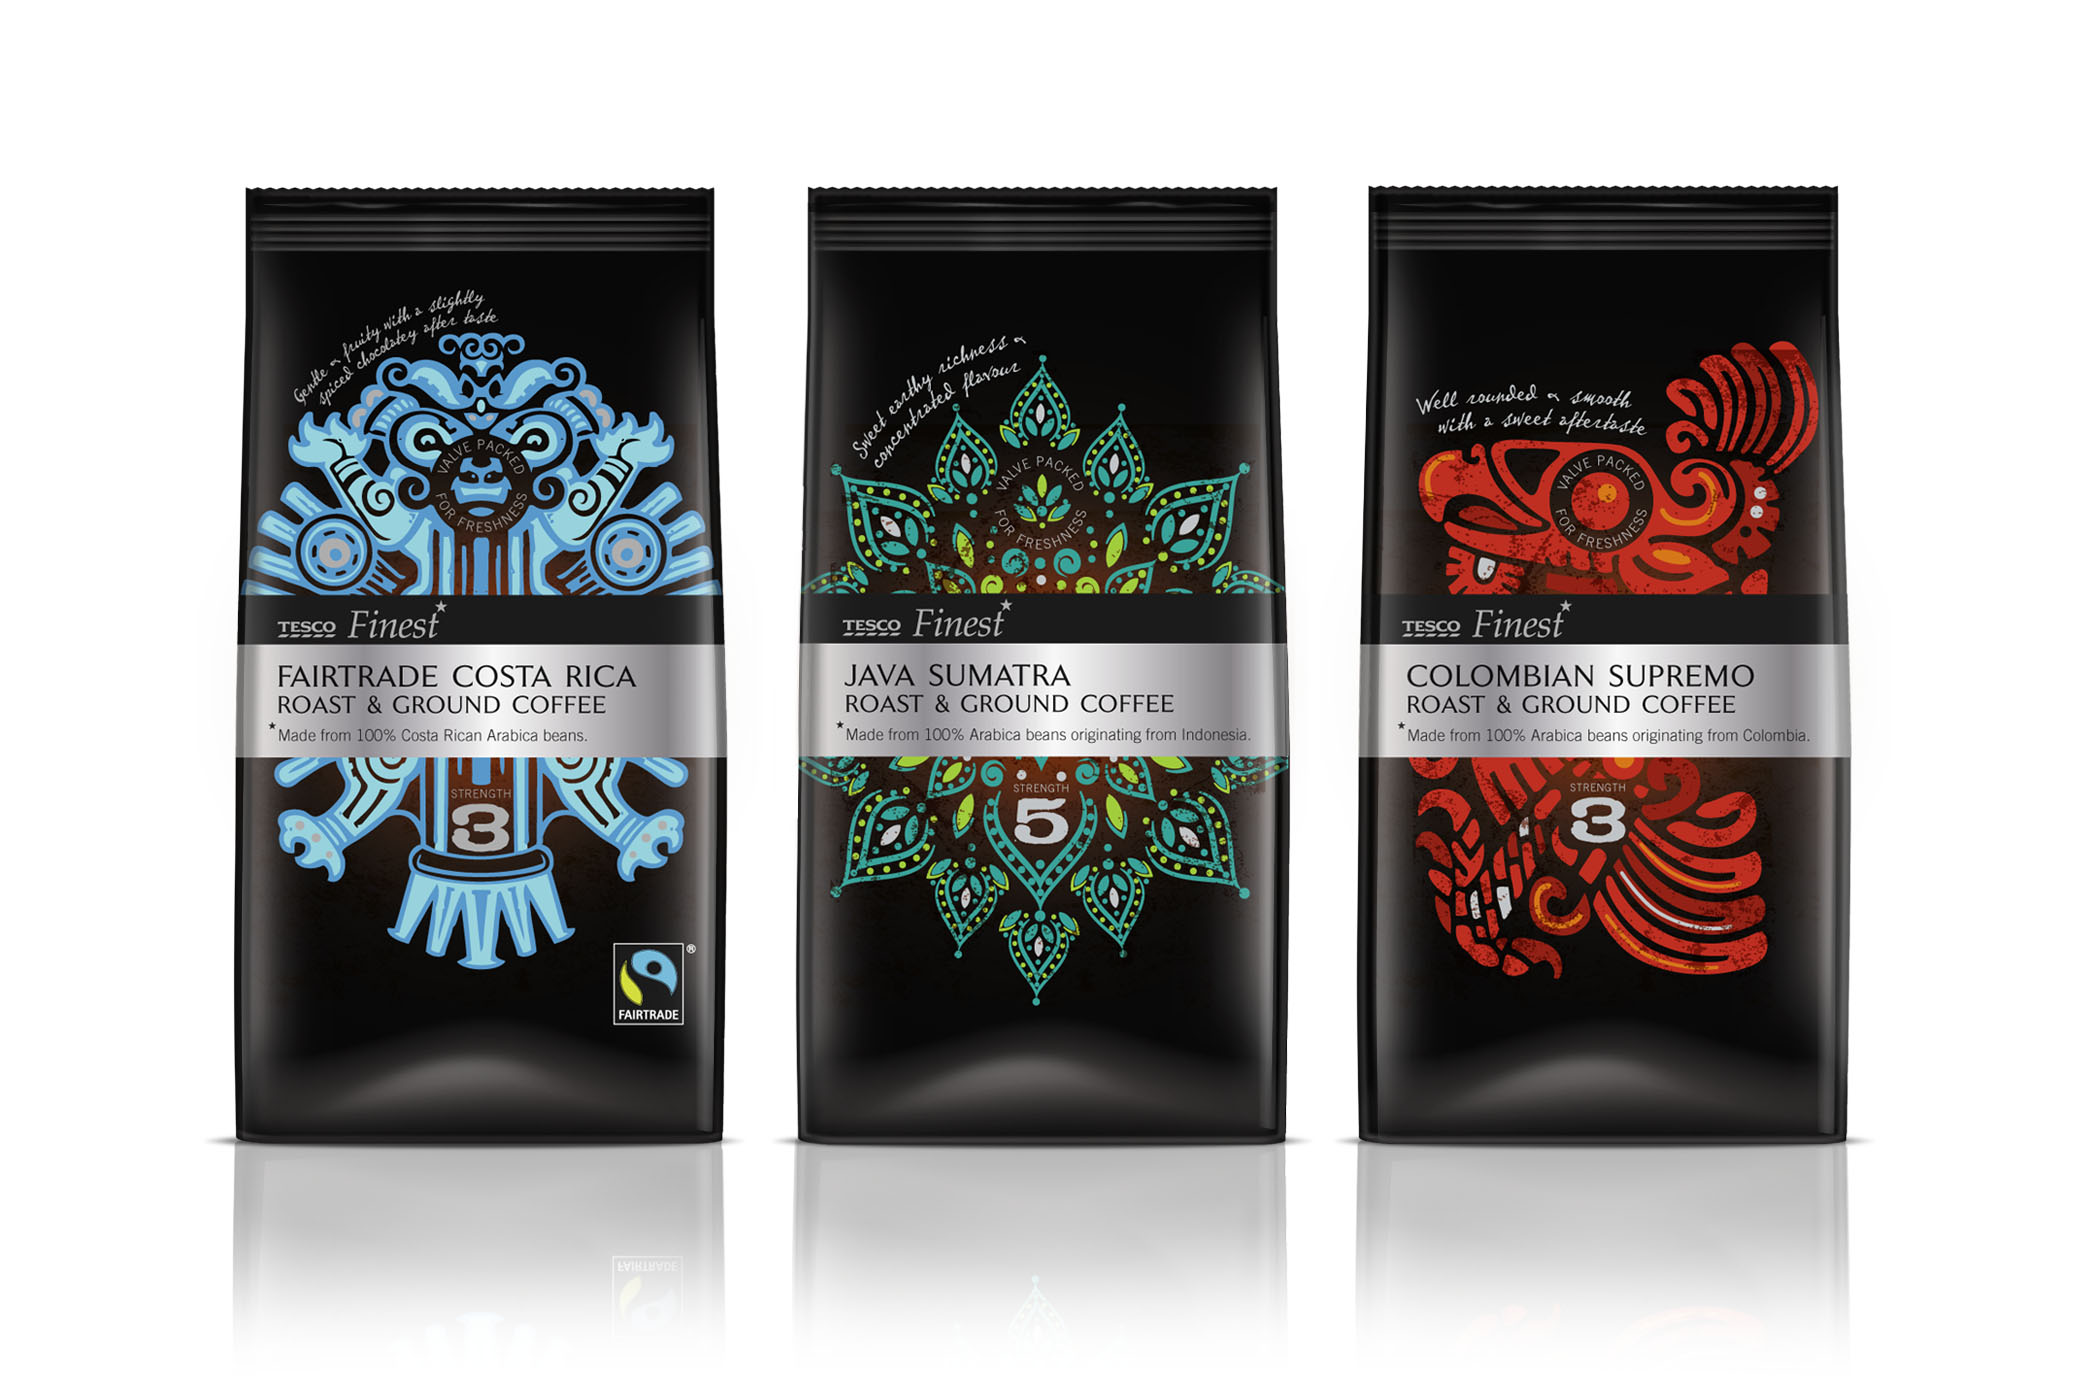 Photo: Tesco fine coffee range, designed by P&W